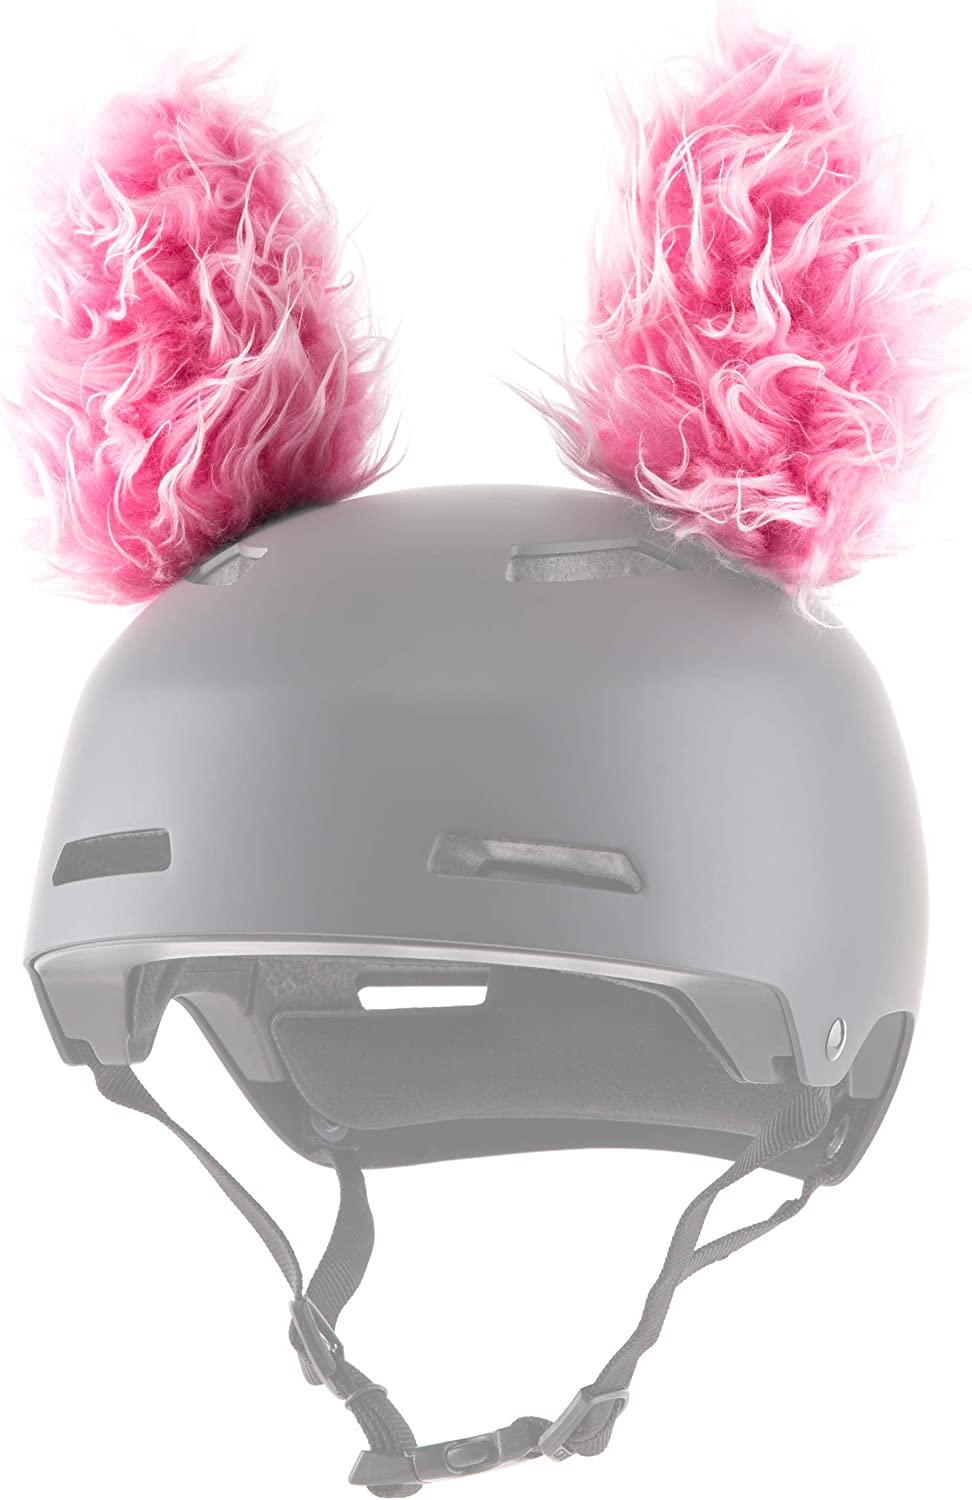 ParaWild Lynx Helmet Accessories w/Sticky Hook & Loop Fastener Adhesive (Helmet not Included), Fun Helmet Bunny/Rabbit Ears/Covers for Snowboarding, Skiing, Biking for Kids, Toddlers and Adults